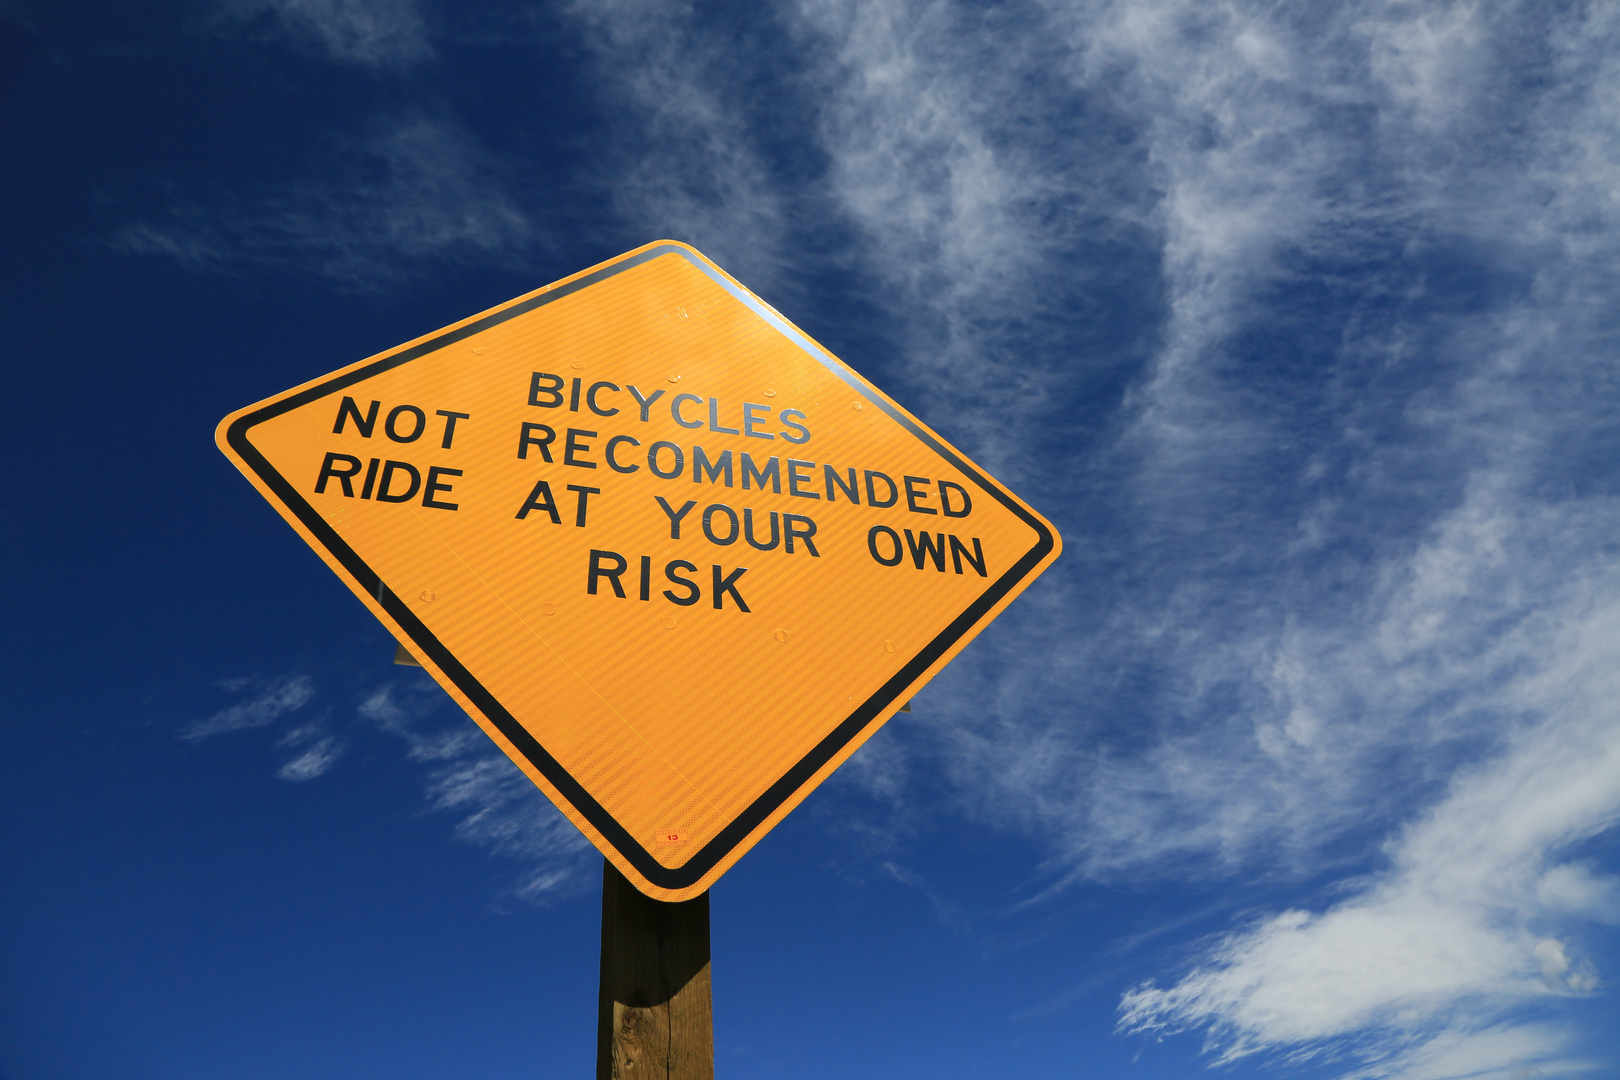 Ride at your own Risk